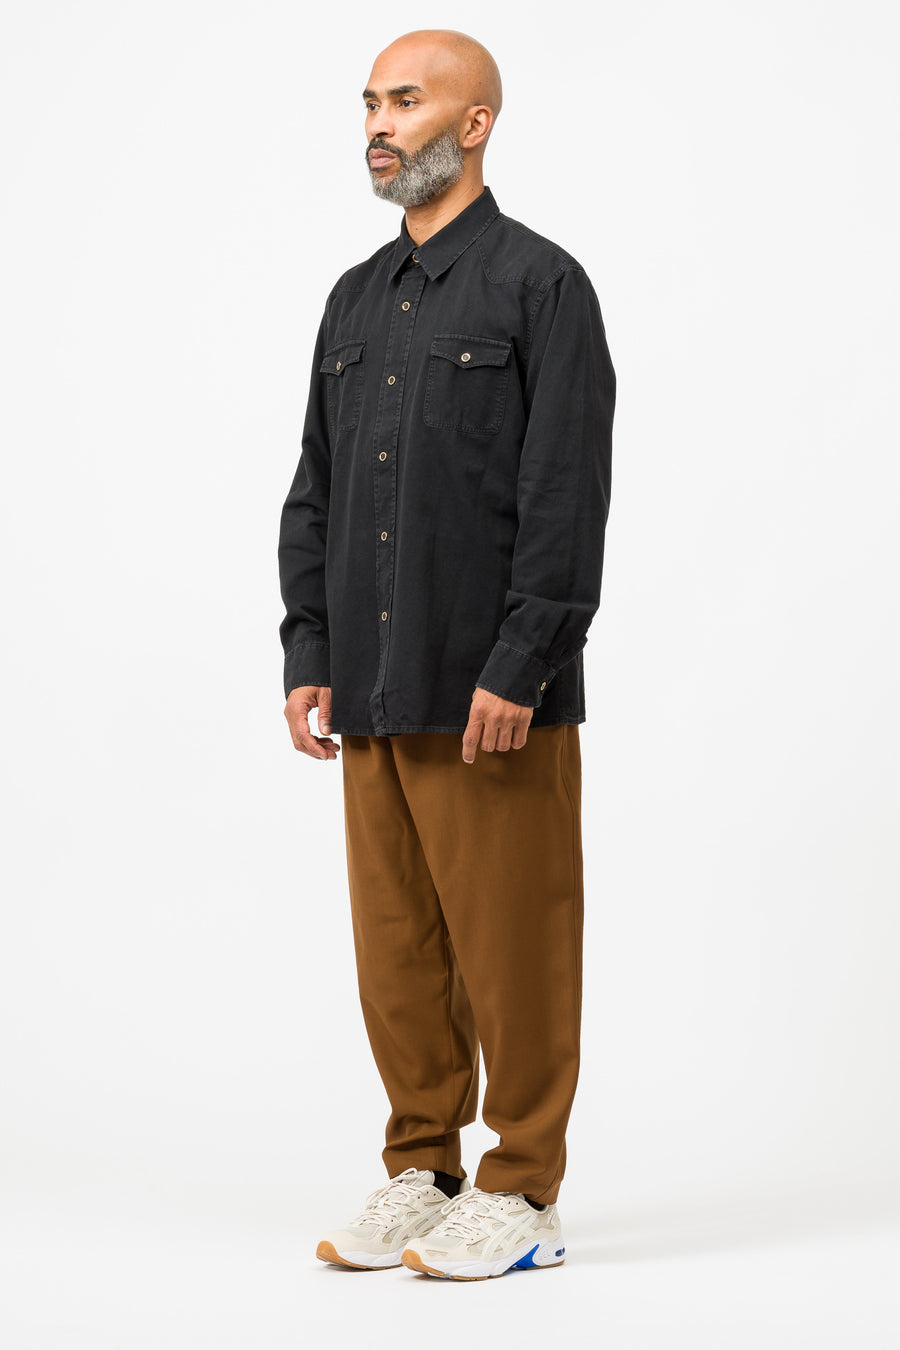 Our Legacy New Frontier Shirt in Black Denim - Notre